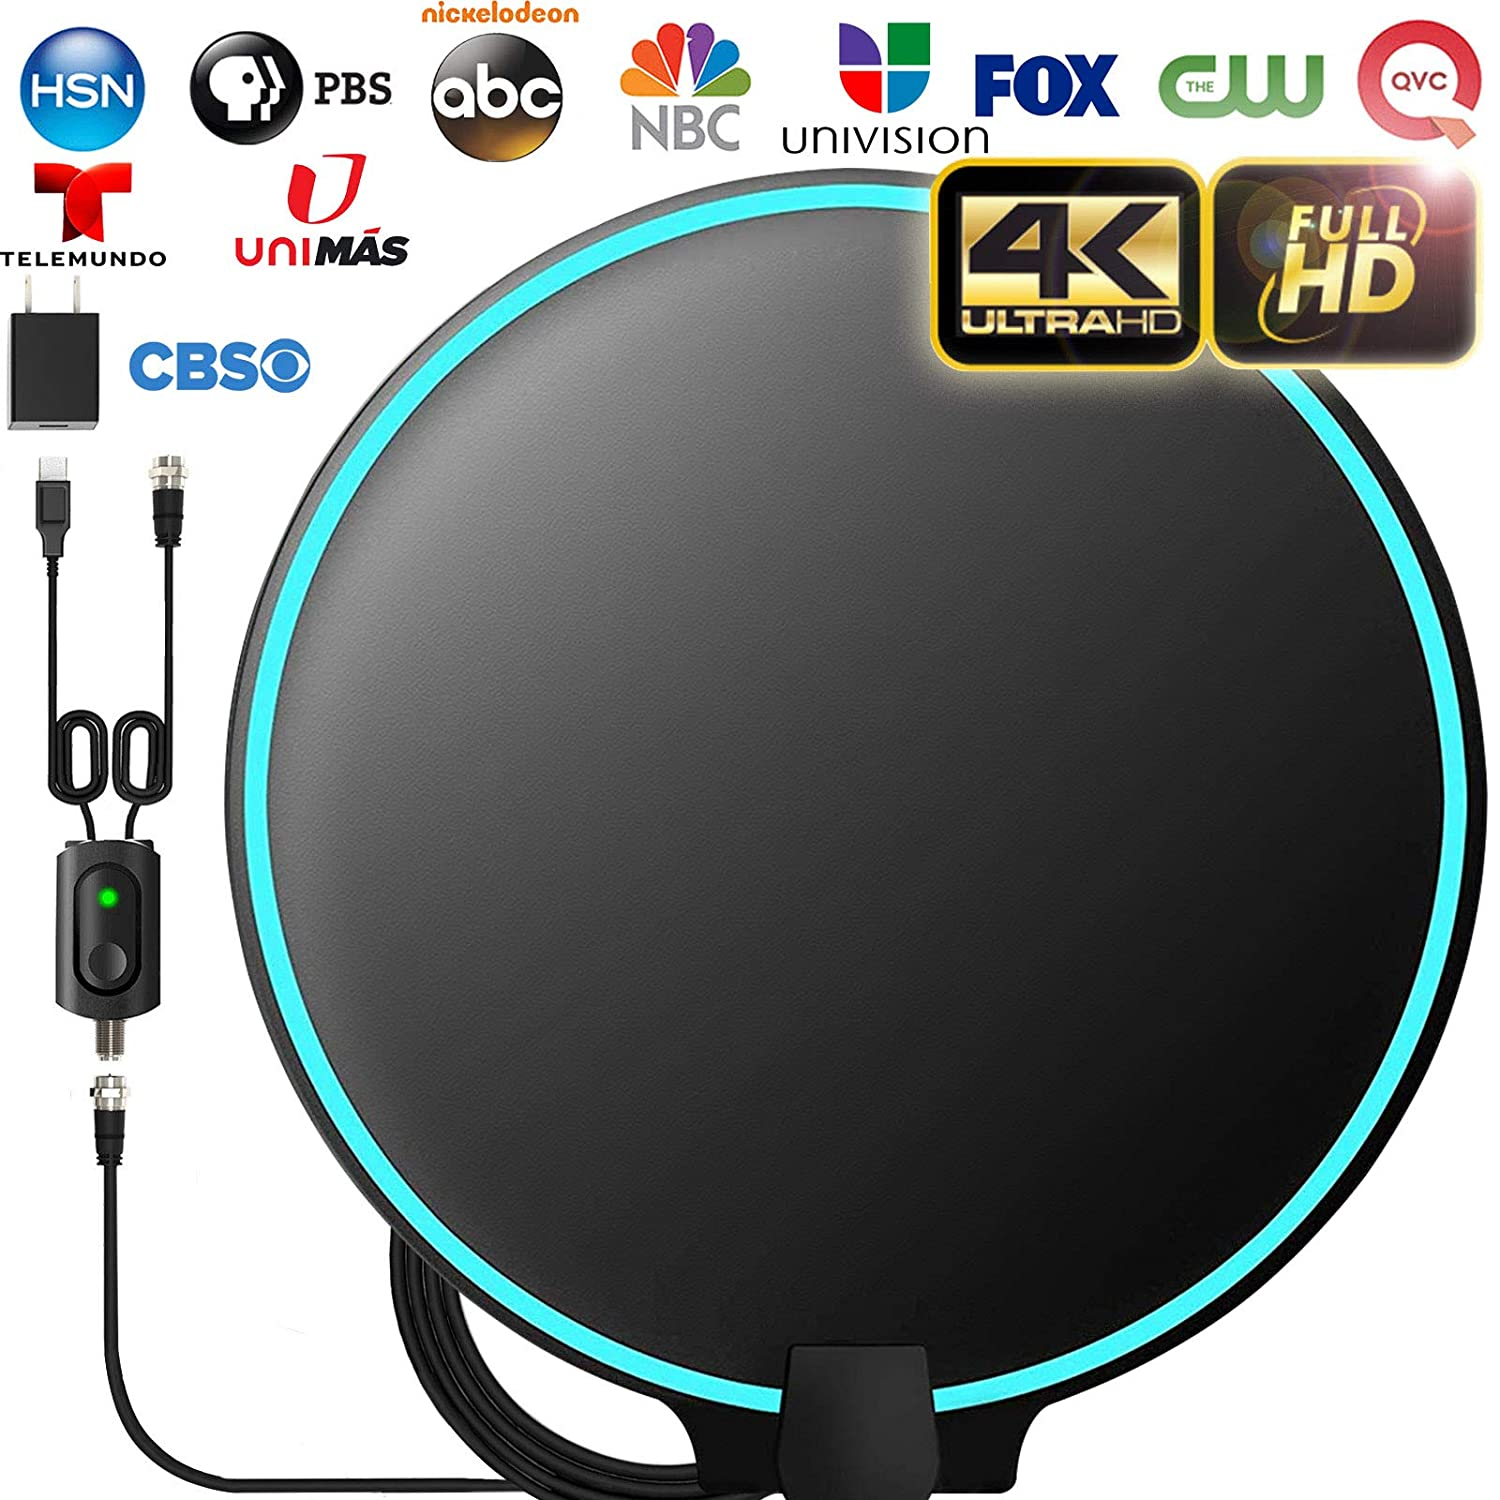 [Upgraded 2020] Amplified HD Digital TV Antenna Long 120 Miles Range - Support 4K 1080p Fire tv Stick and All Older TV's Indoor Powerful HDTV Amplifier Signal Booster - 18ft Coax Cable/AC Adapter